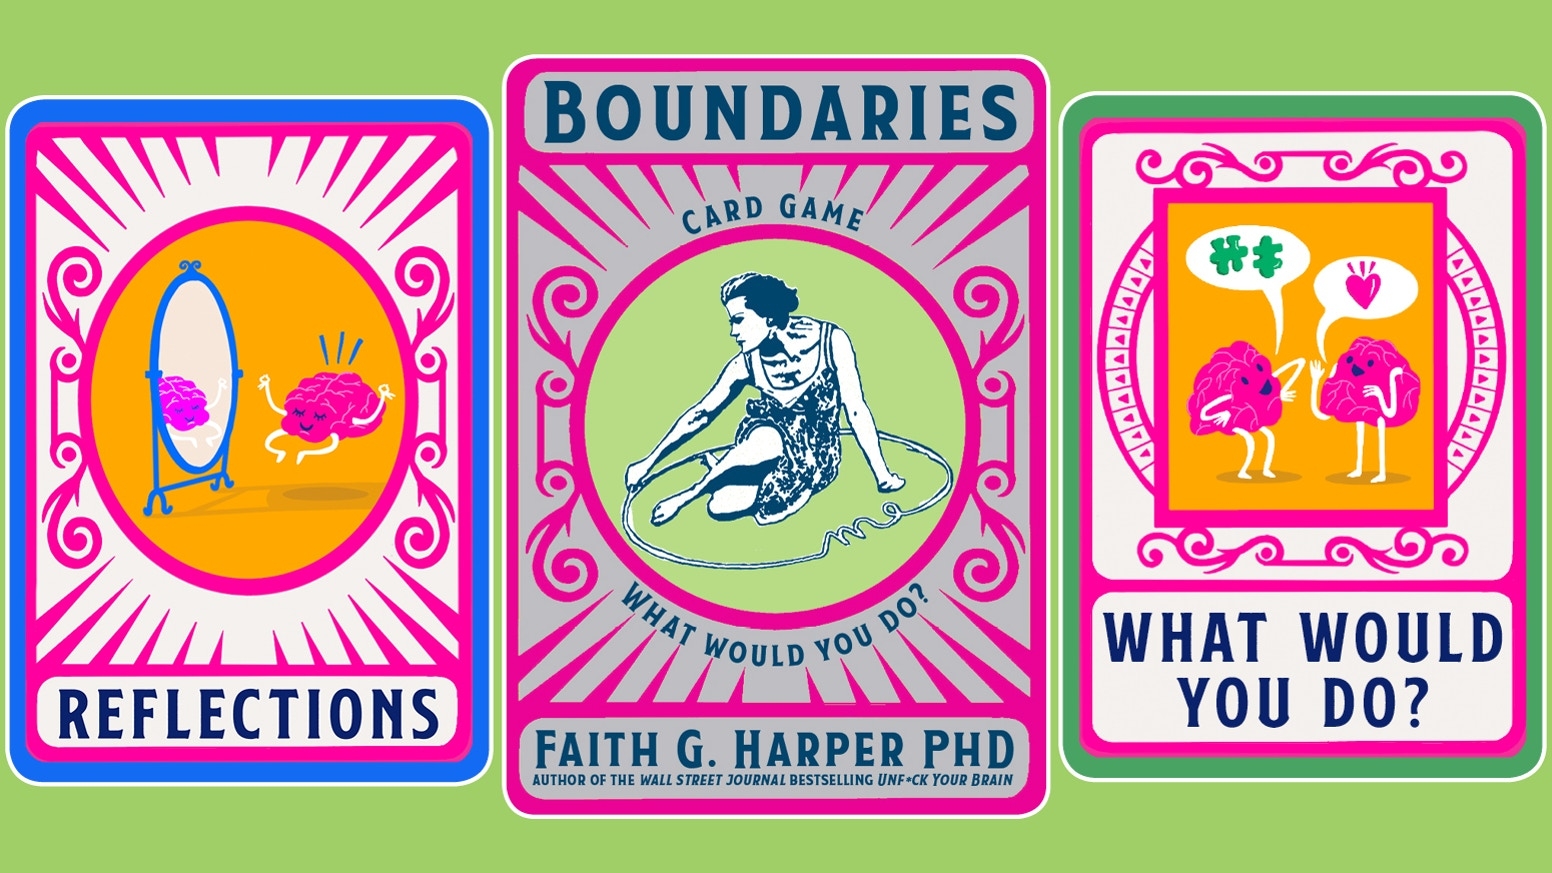 Dr. Faith Harper's card deck prompts reflection and discussion about boundaries and consent in our daily lives.